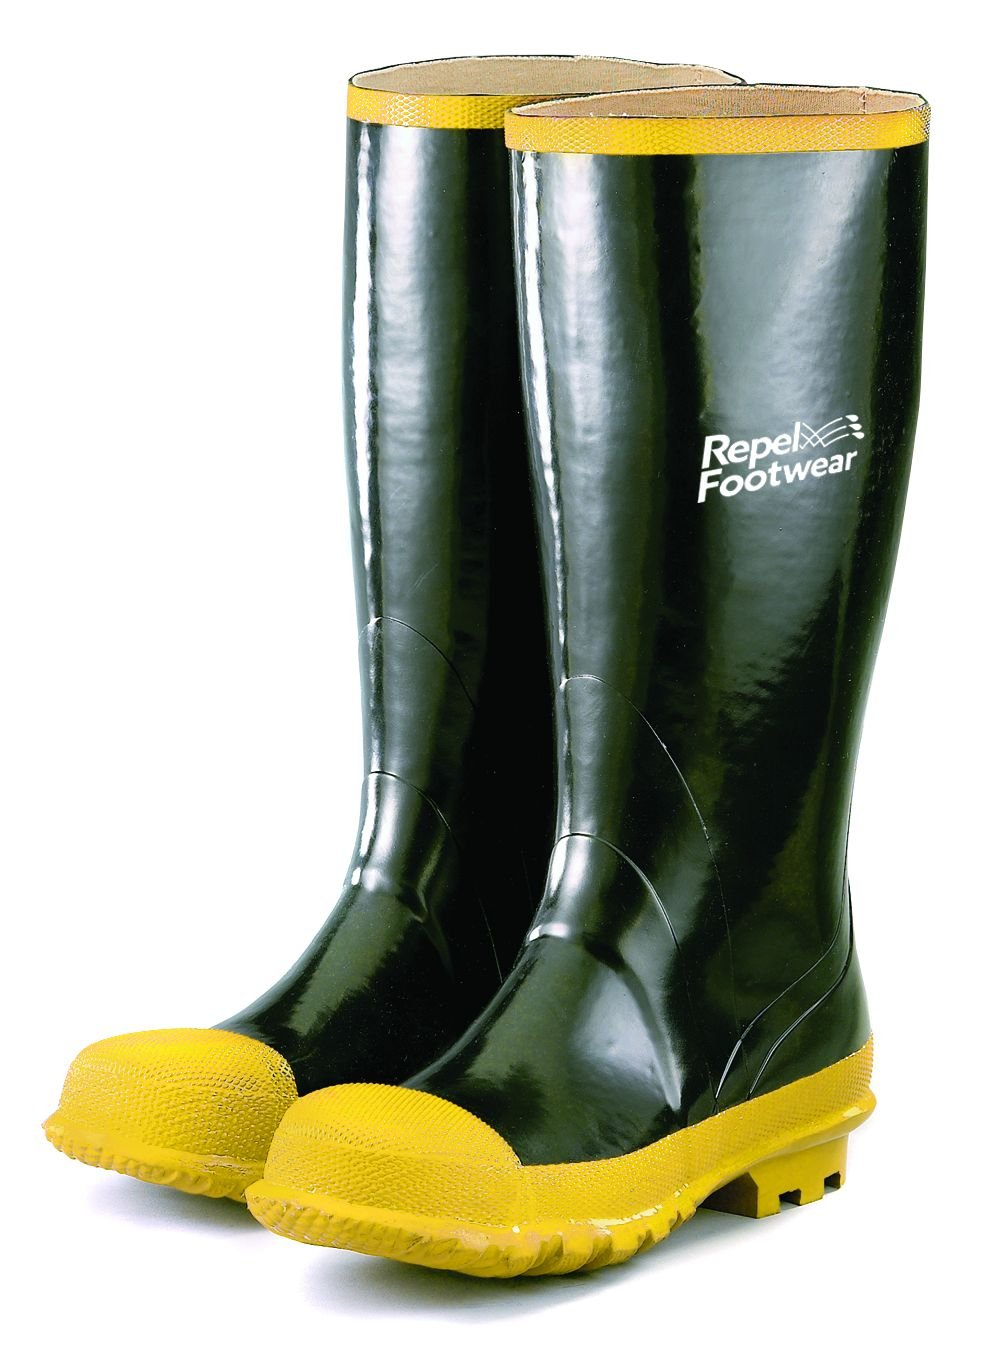 Galeton 7920-14 Repel Footwear Steel Toe Boots with No-Clip Treads, Men's Size 14, Black/Yellow